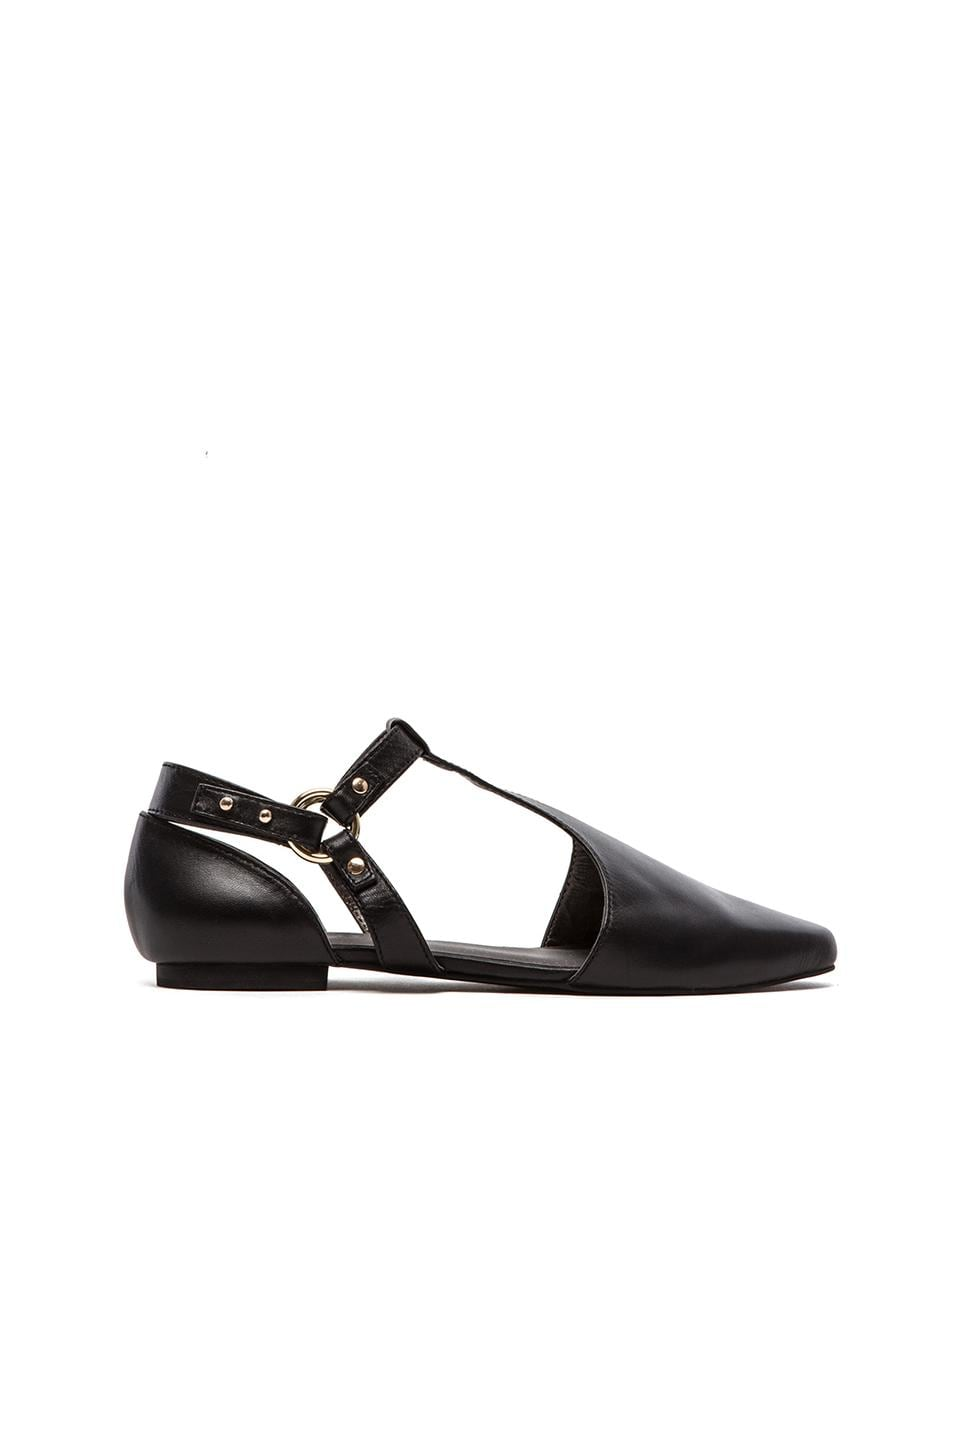 GREY CITY Sae Flats in Black